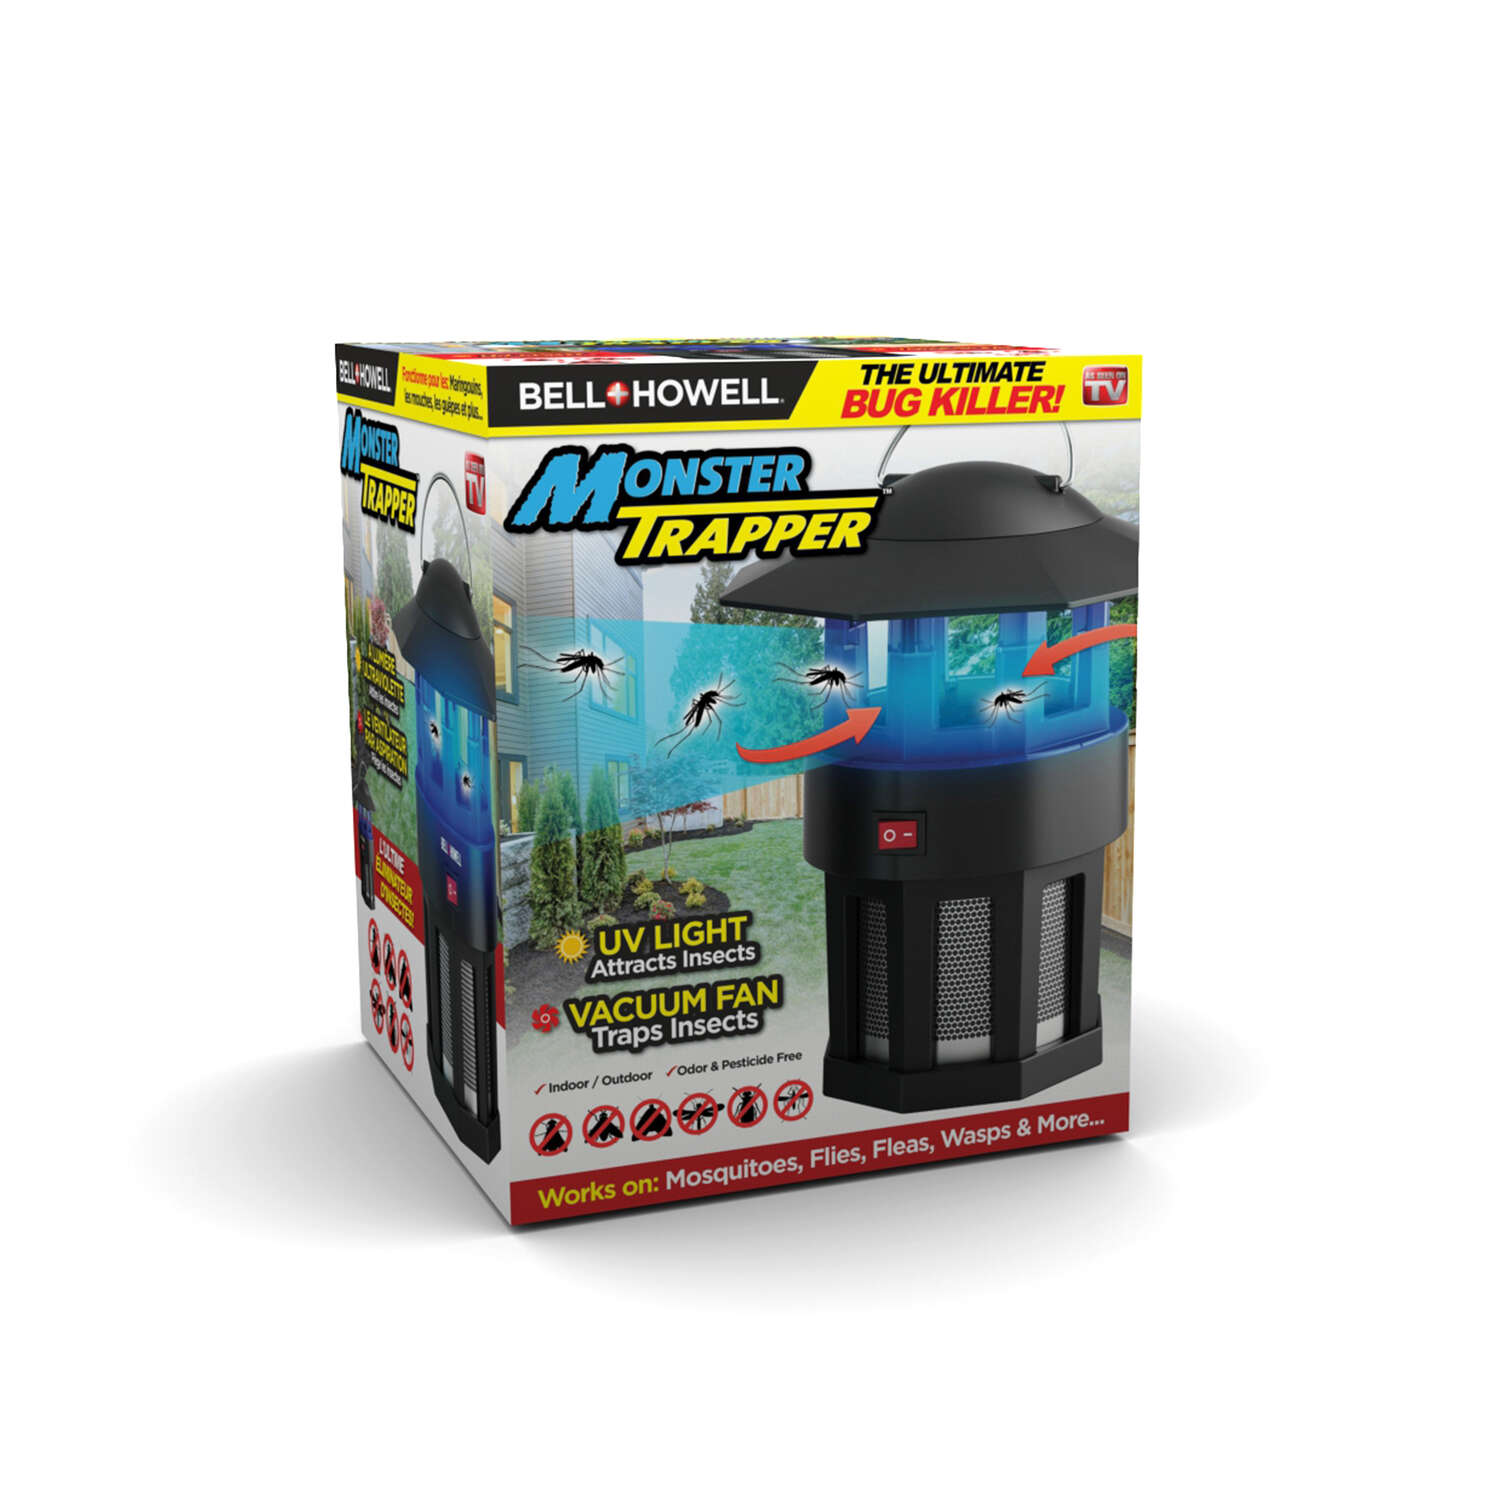 Bell+Howell Monster Trapper Indoor and Outdoor Insect Killer